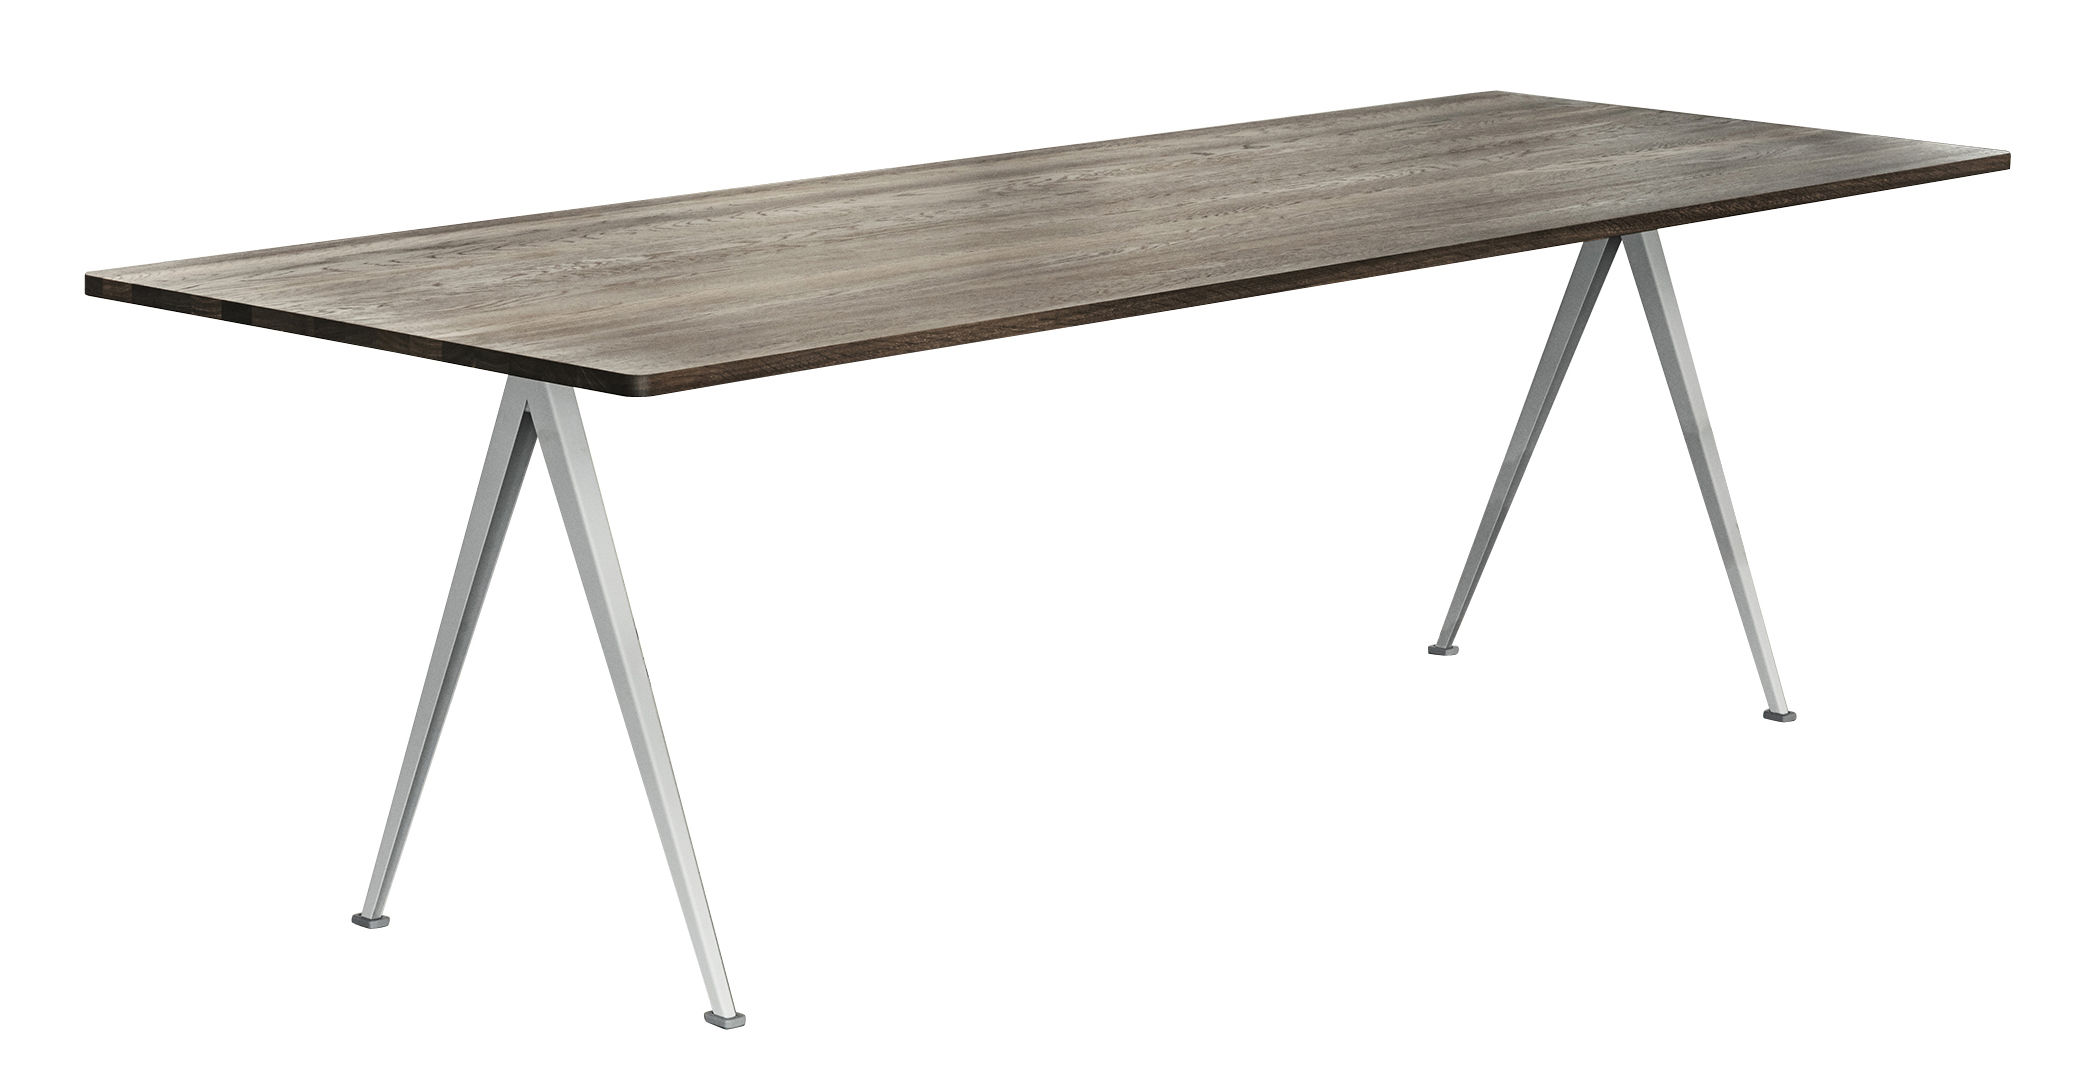 Furniture - Dining Tables - Pyramid n°02 Table - / 250 x 85 cm - Re-issue 1959 by Hay - 250 x 85 / Smoked oak & beige - Lacquered steel, Smoked oak